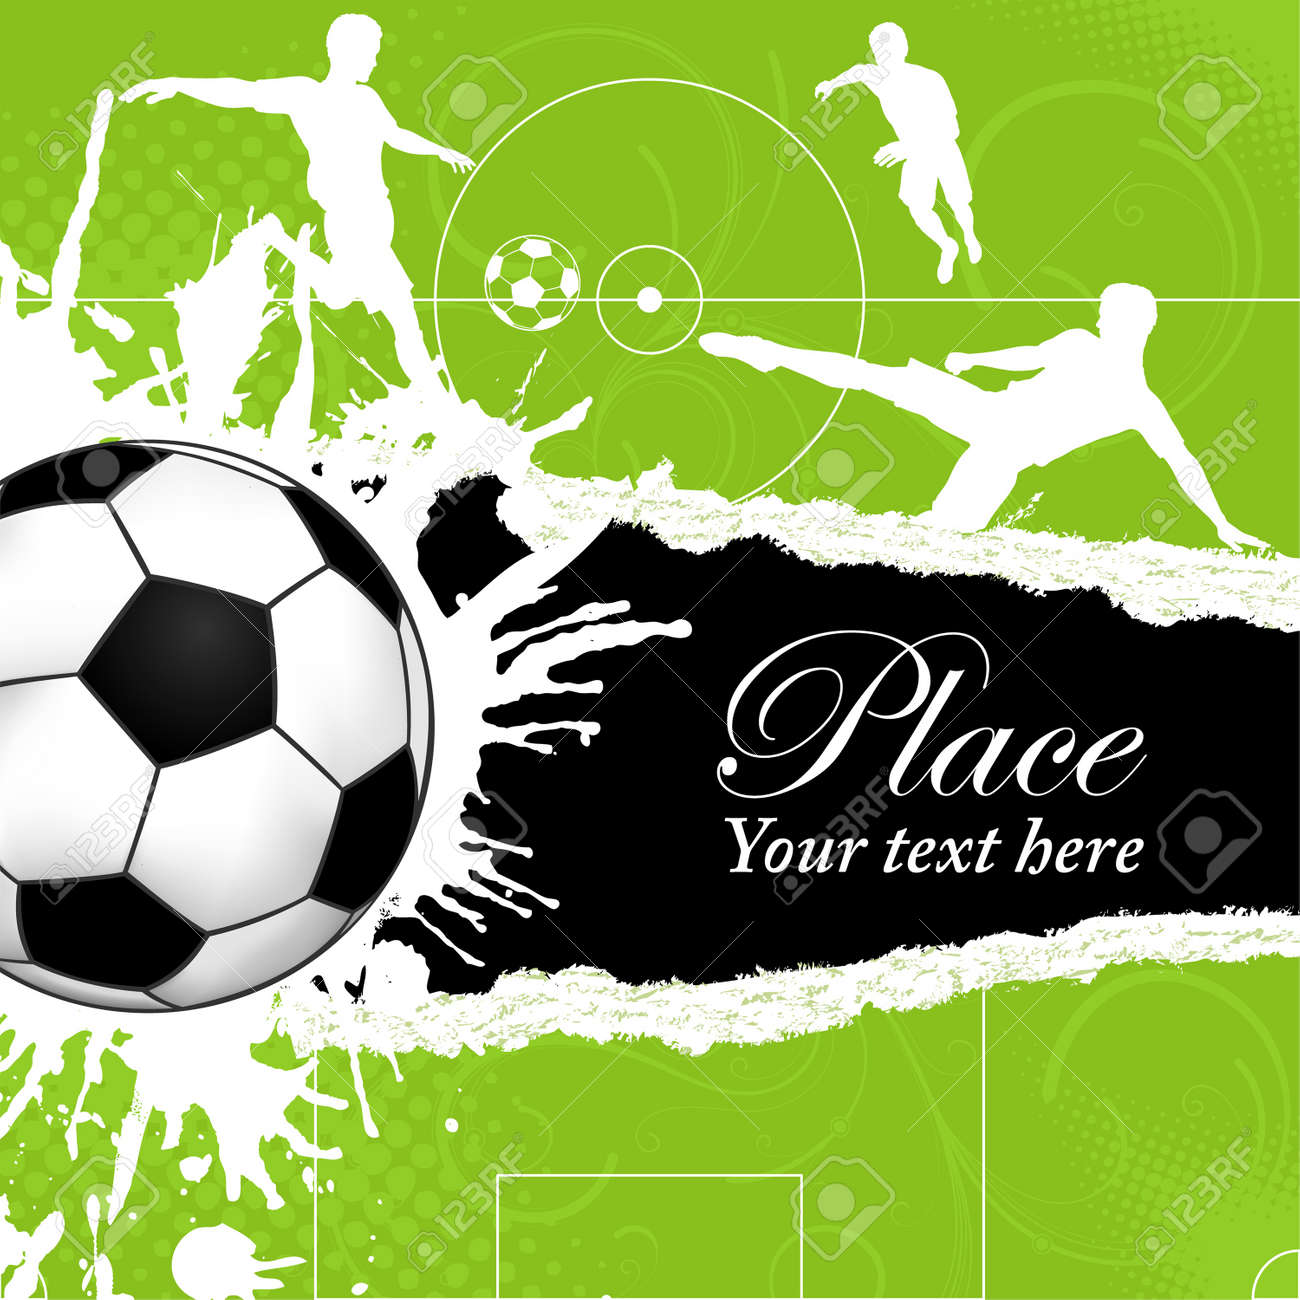 soccer ball on grunge background with silhouettes football players